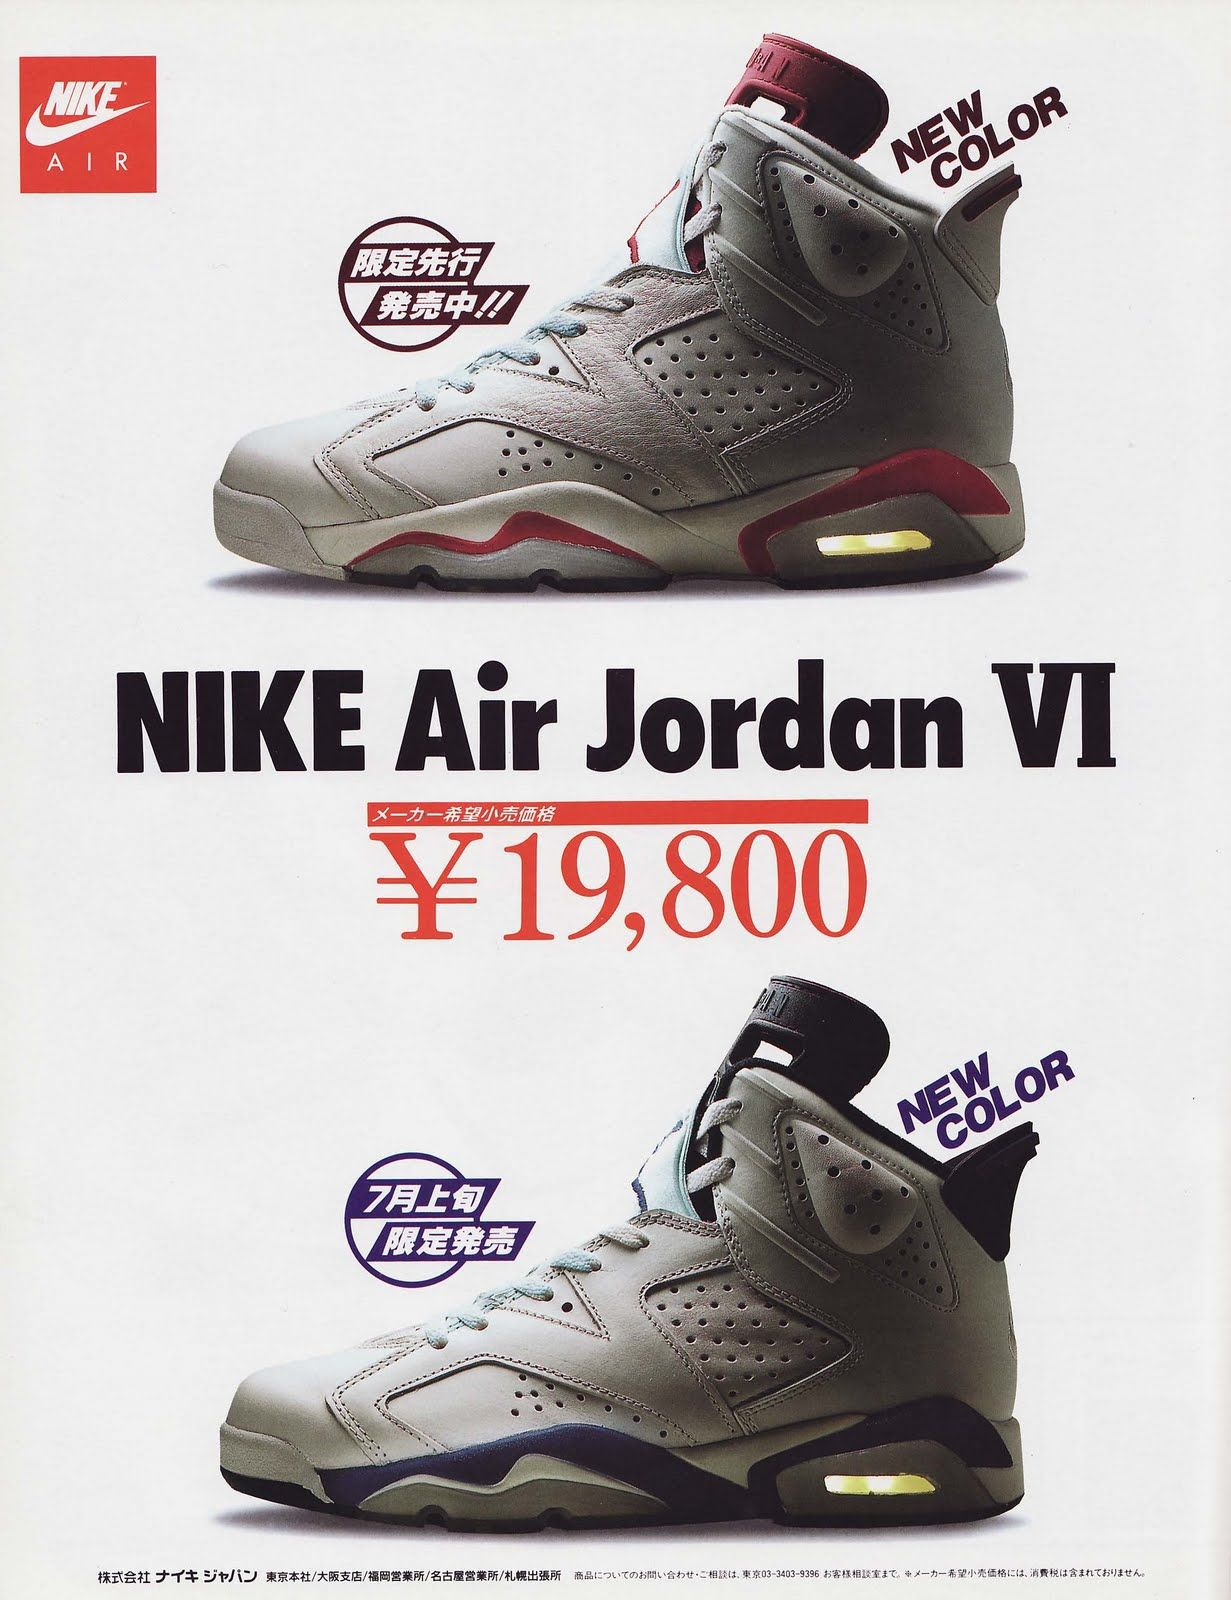 late 90s jordan print ad - Google Search